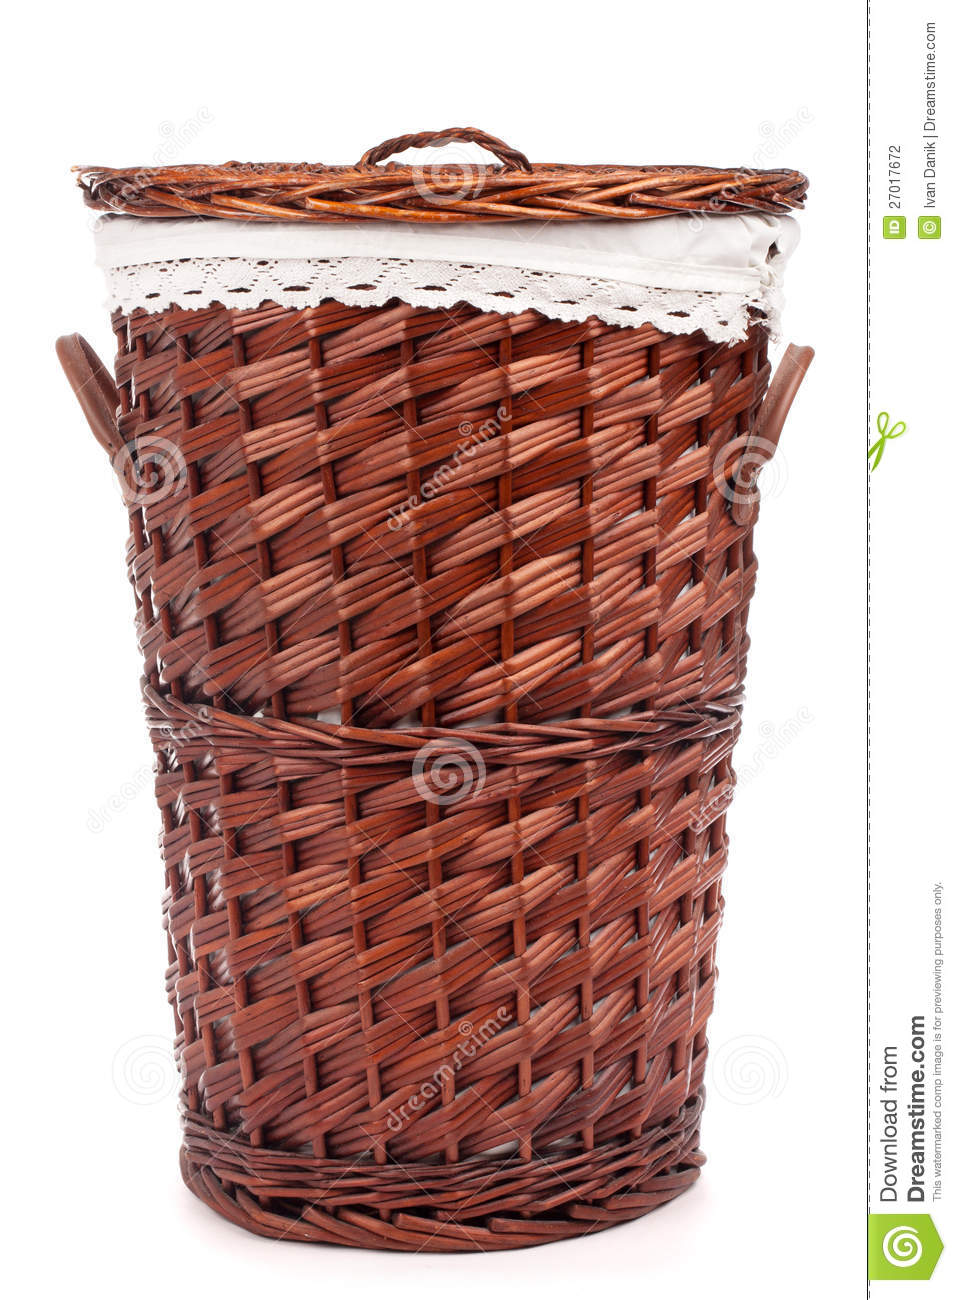 Wicker hamper stock photography image 27017672 - Hamper for dirty clothes ...